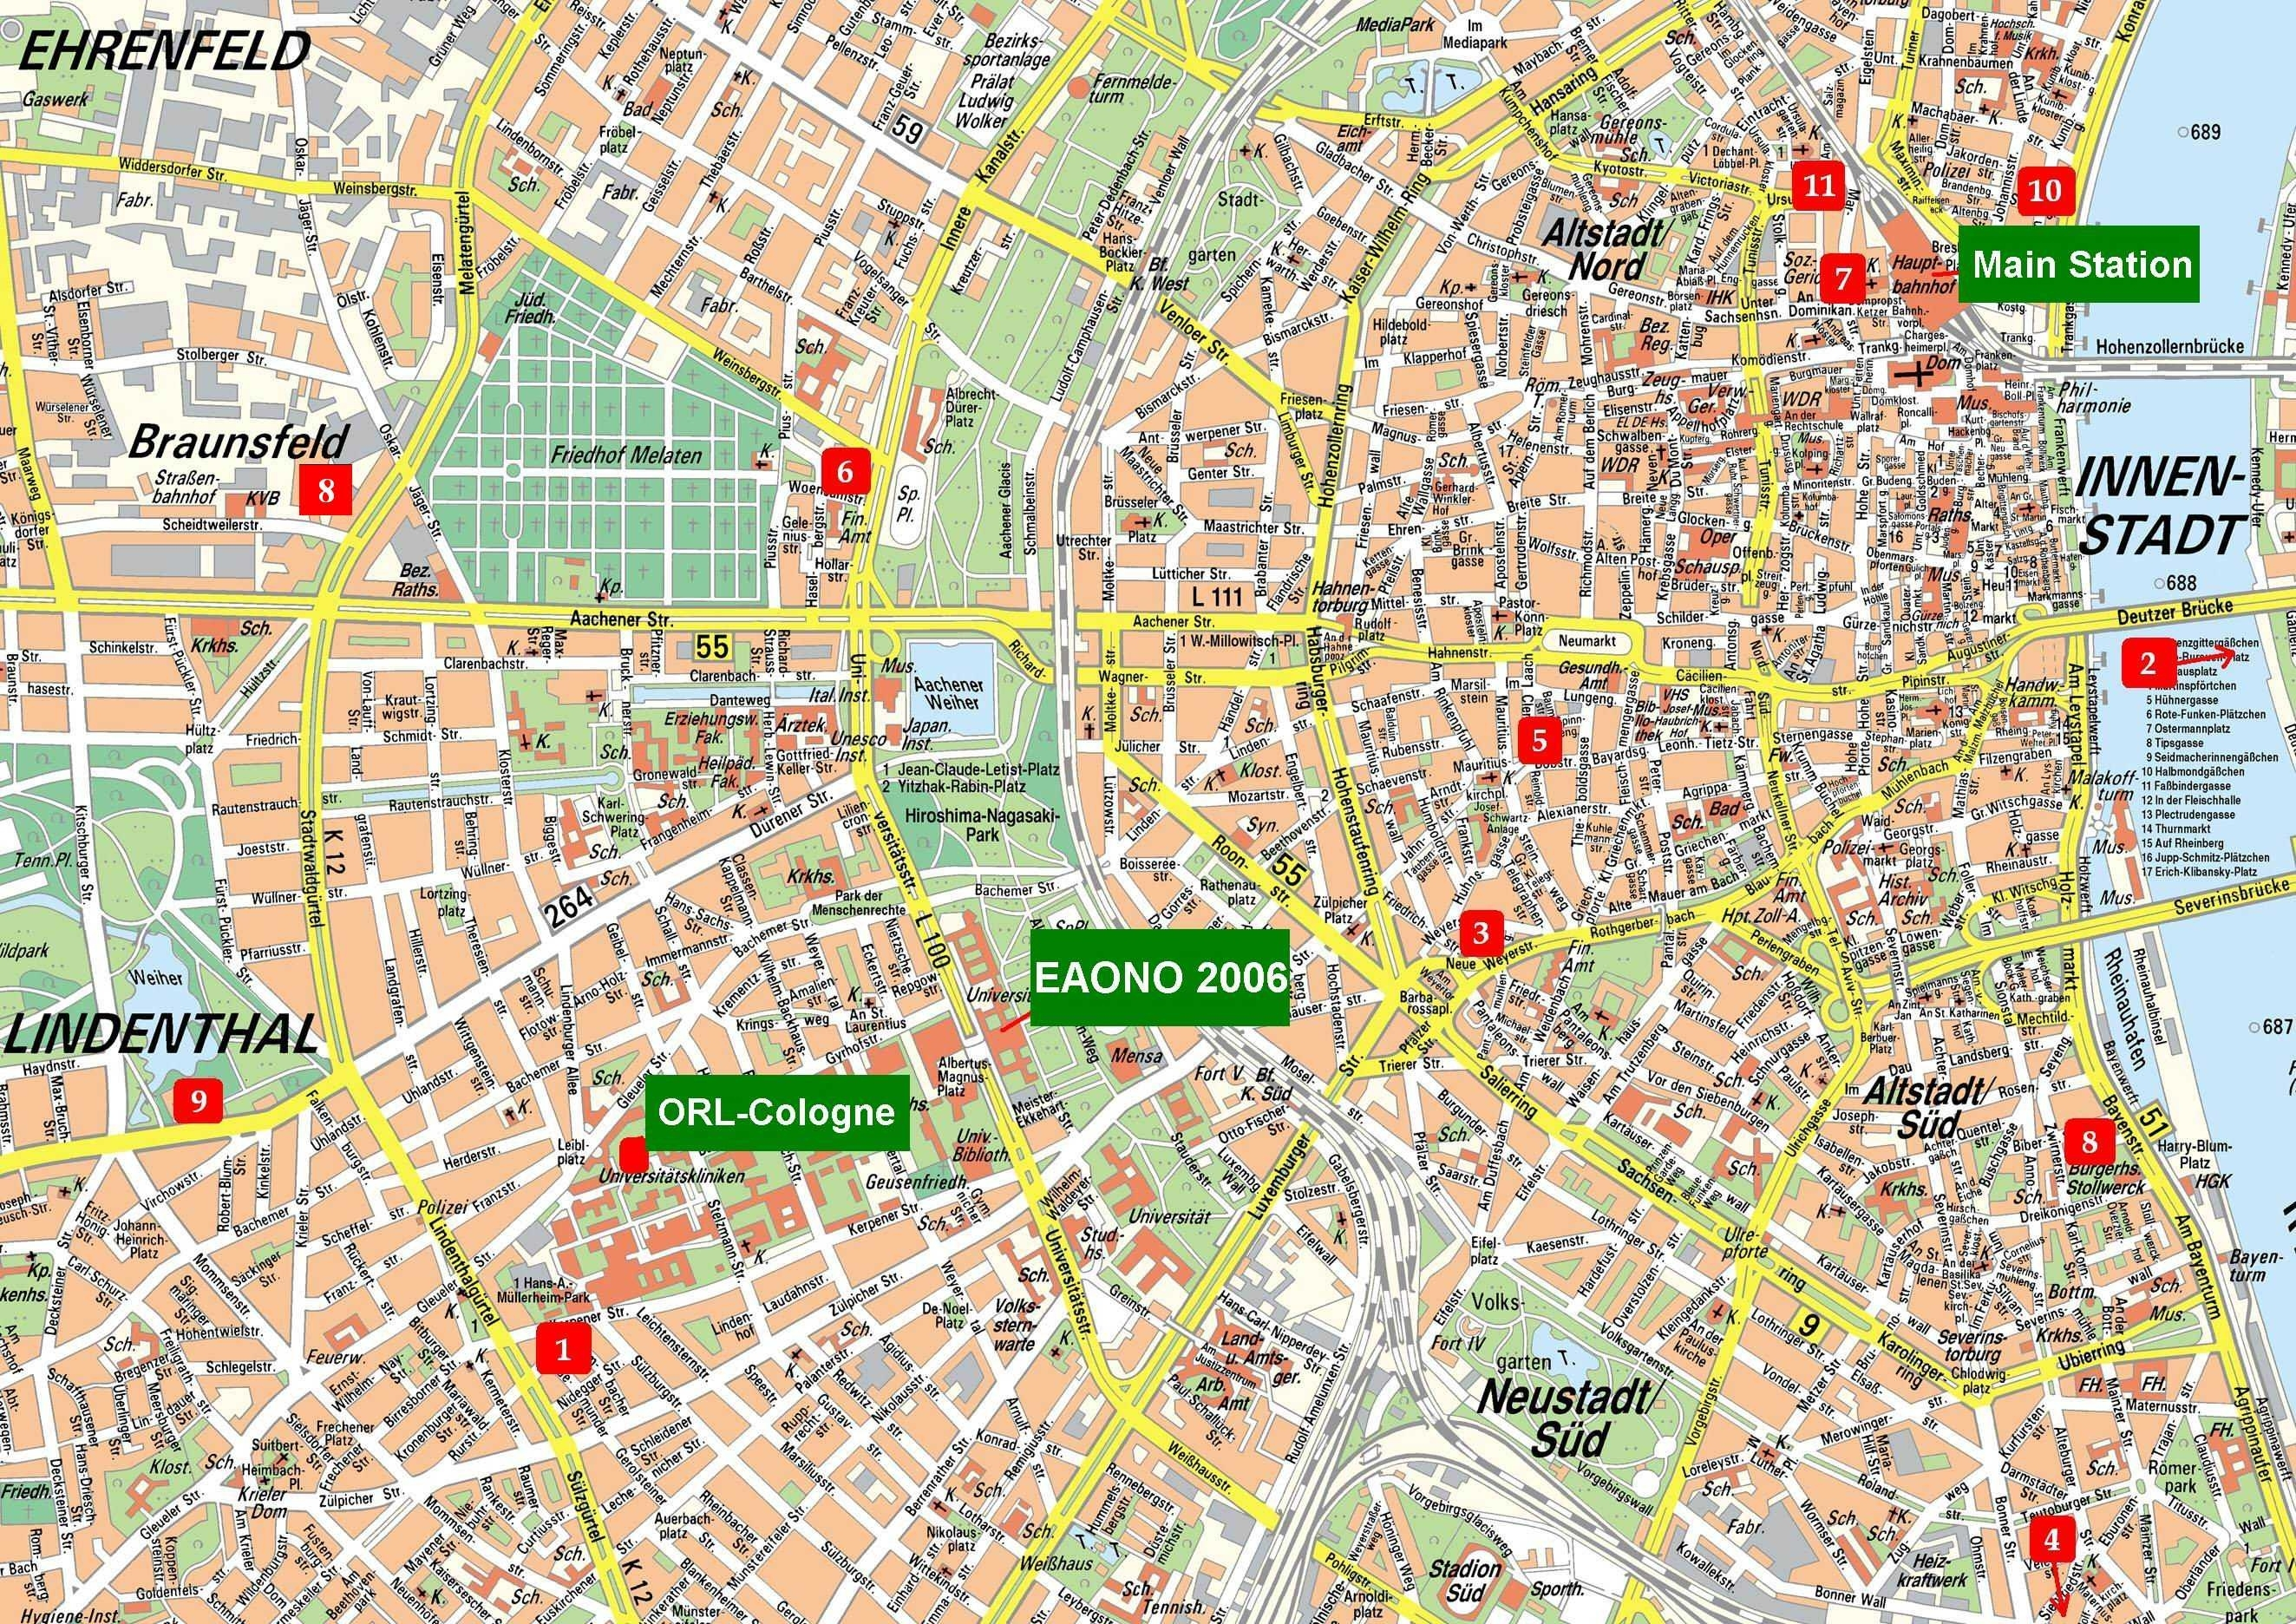 Large Cologne Maps For Free Download And Print | High-Resolution And for Street Map Cologne Germany